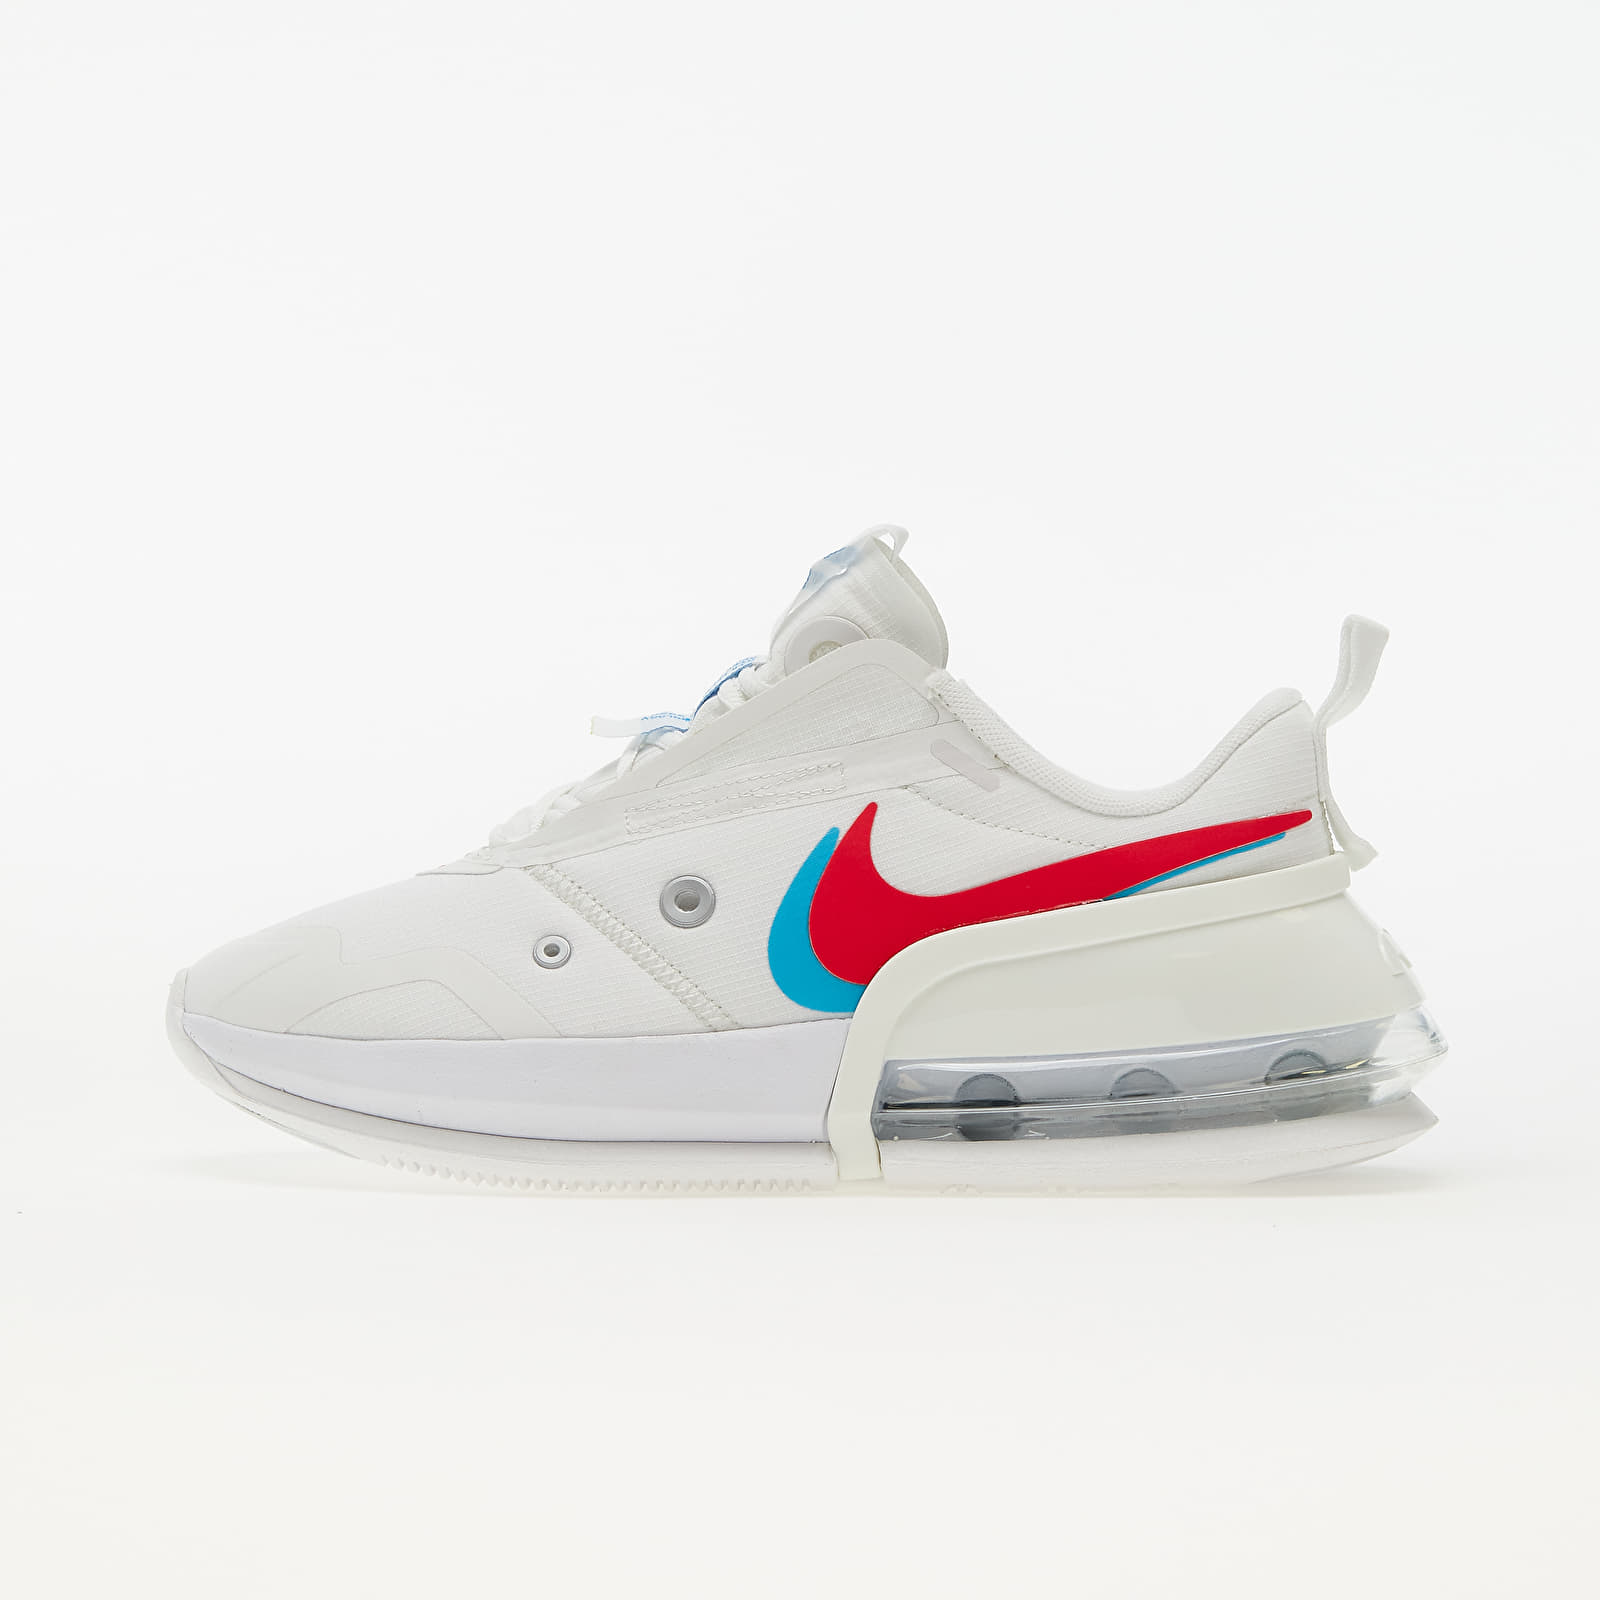 Nike W Air Max Up Summit White/ Siren Red-Chlorine Blue EUR 38.5